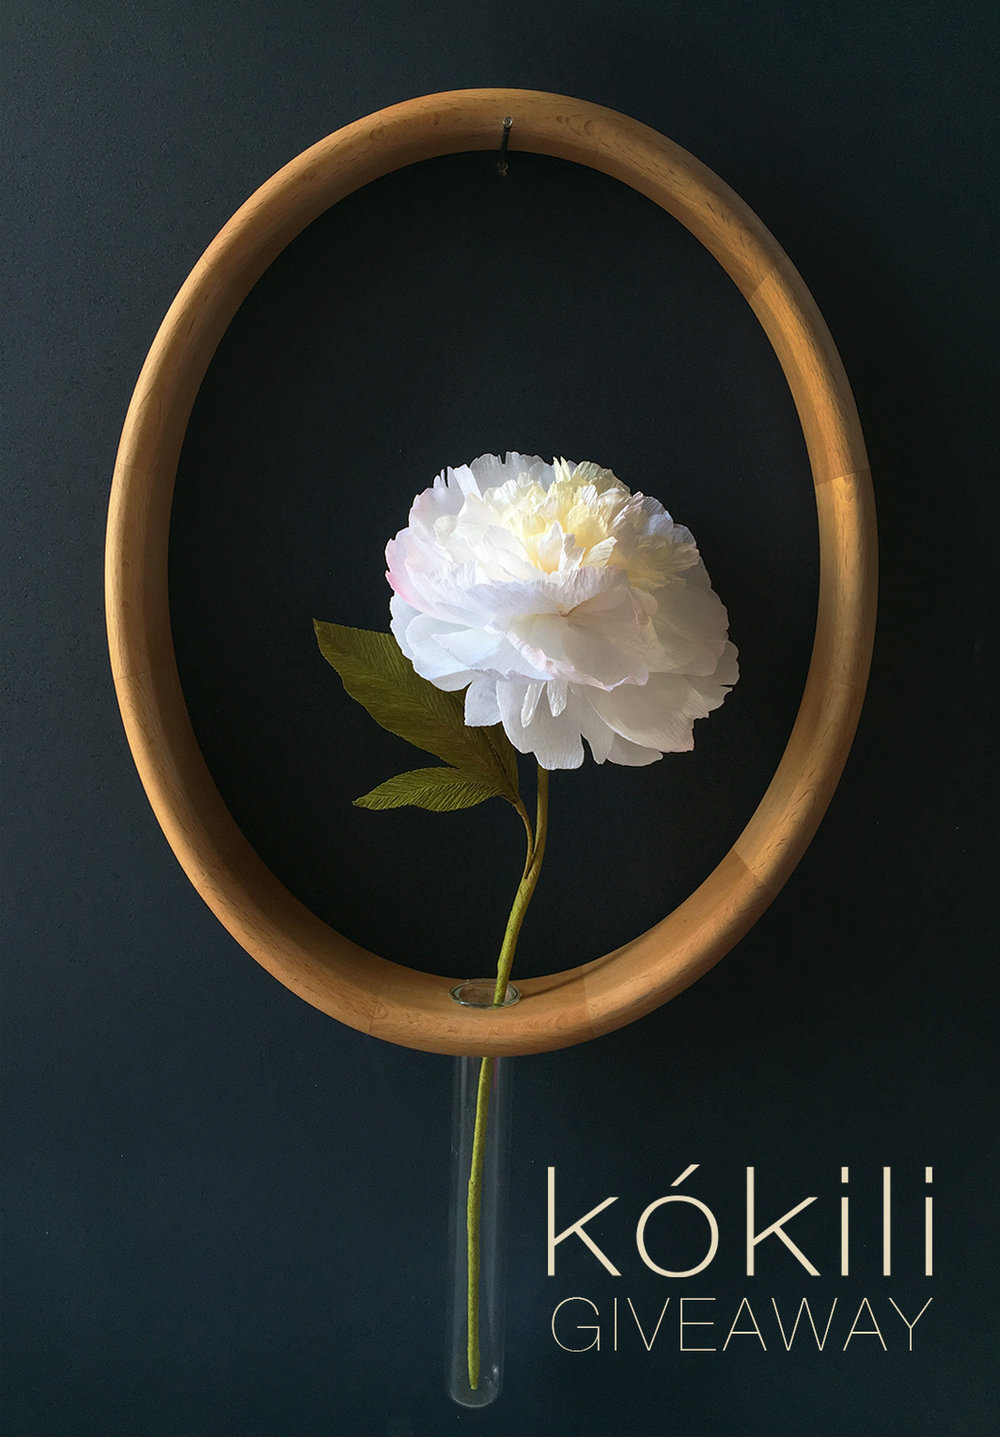 kokili // social media campaign  Conceived of and designed partnership with leading paper flower designer, Lynn Dolan,  to raise awareness of kokili's product launch of the Mary Vase.